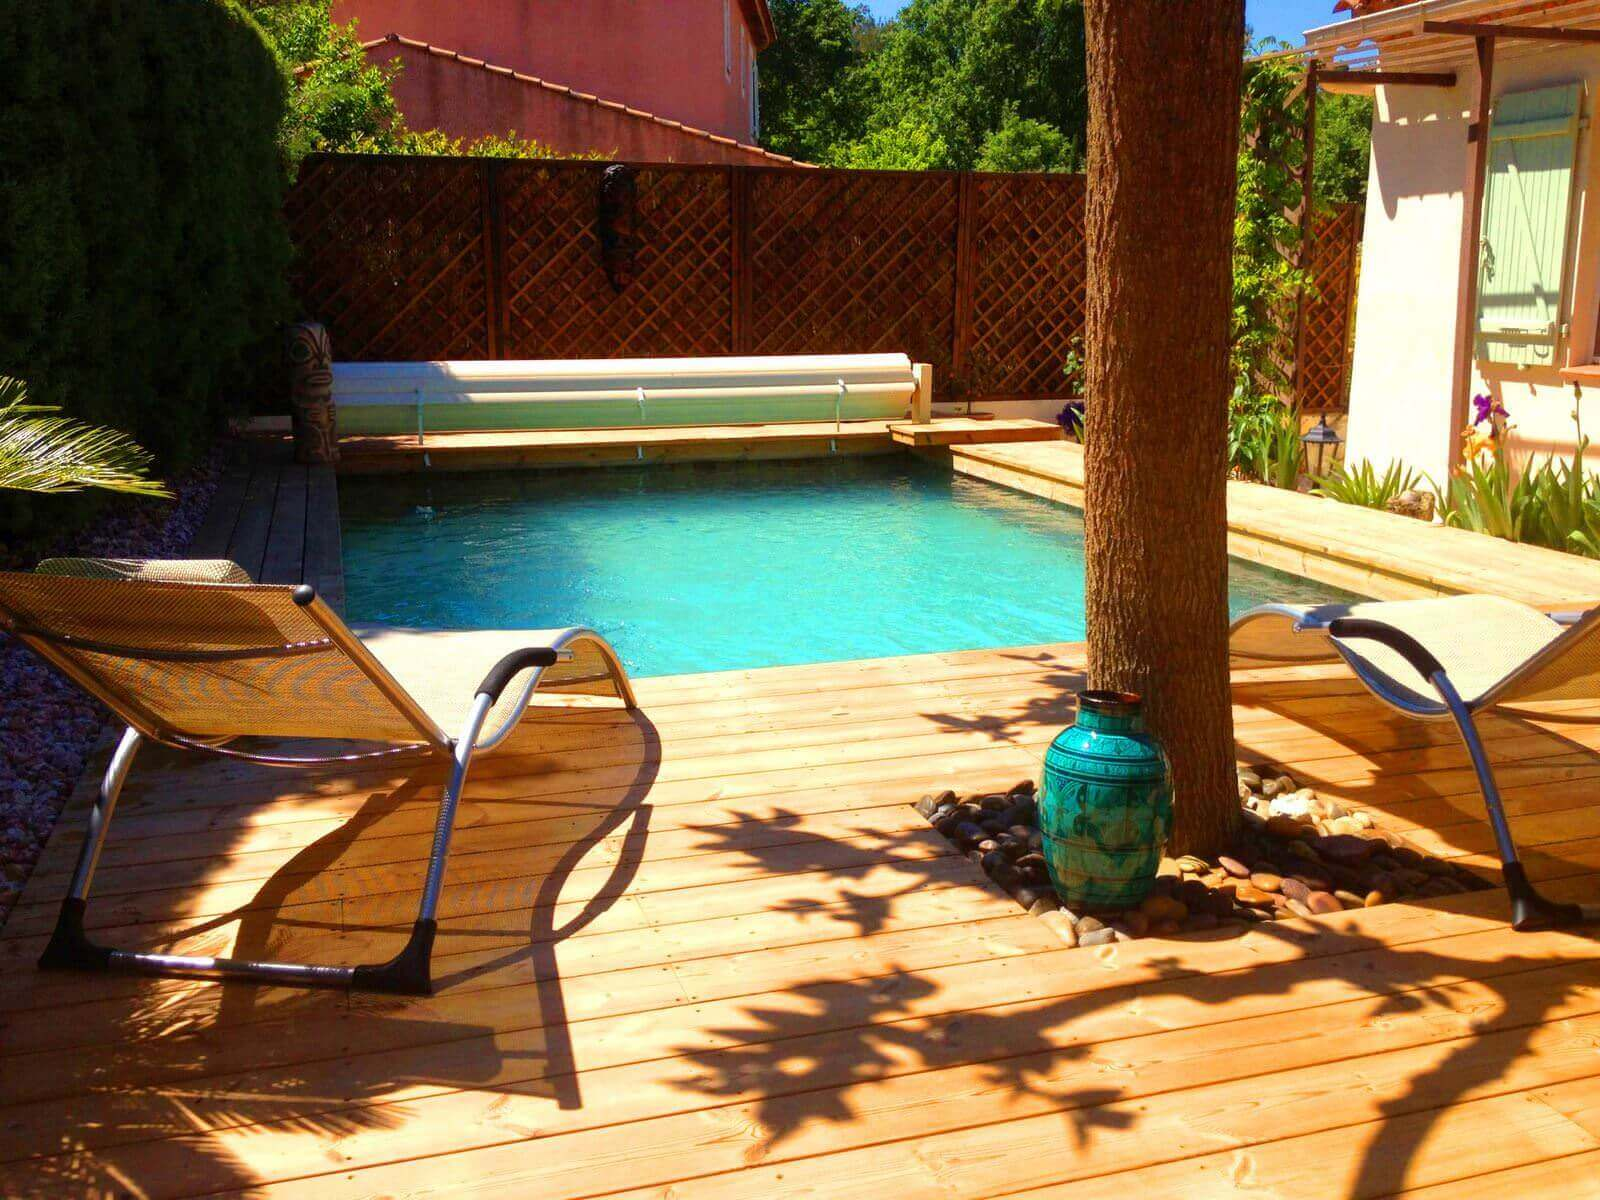 terrasse avec piscine hors sol trendy la piscine en bois. Black Bedroom Furniture Sets. Home Design Ideas